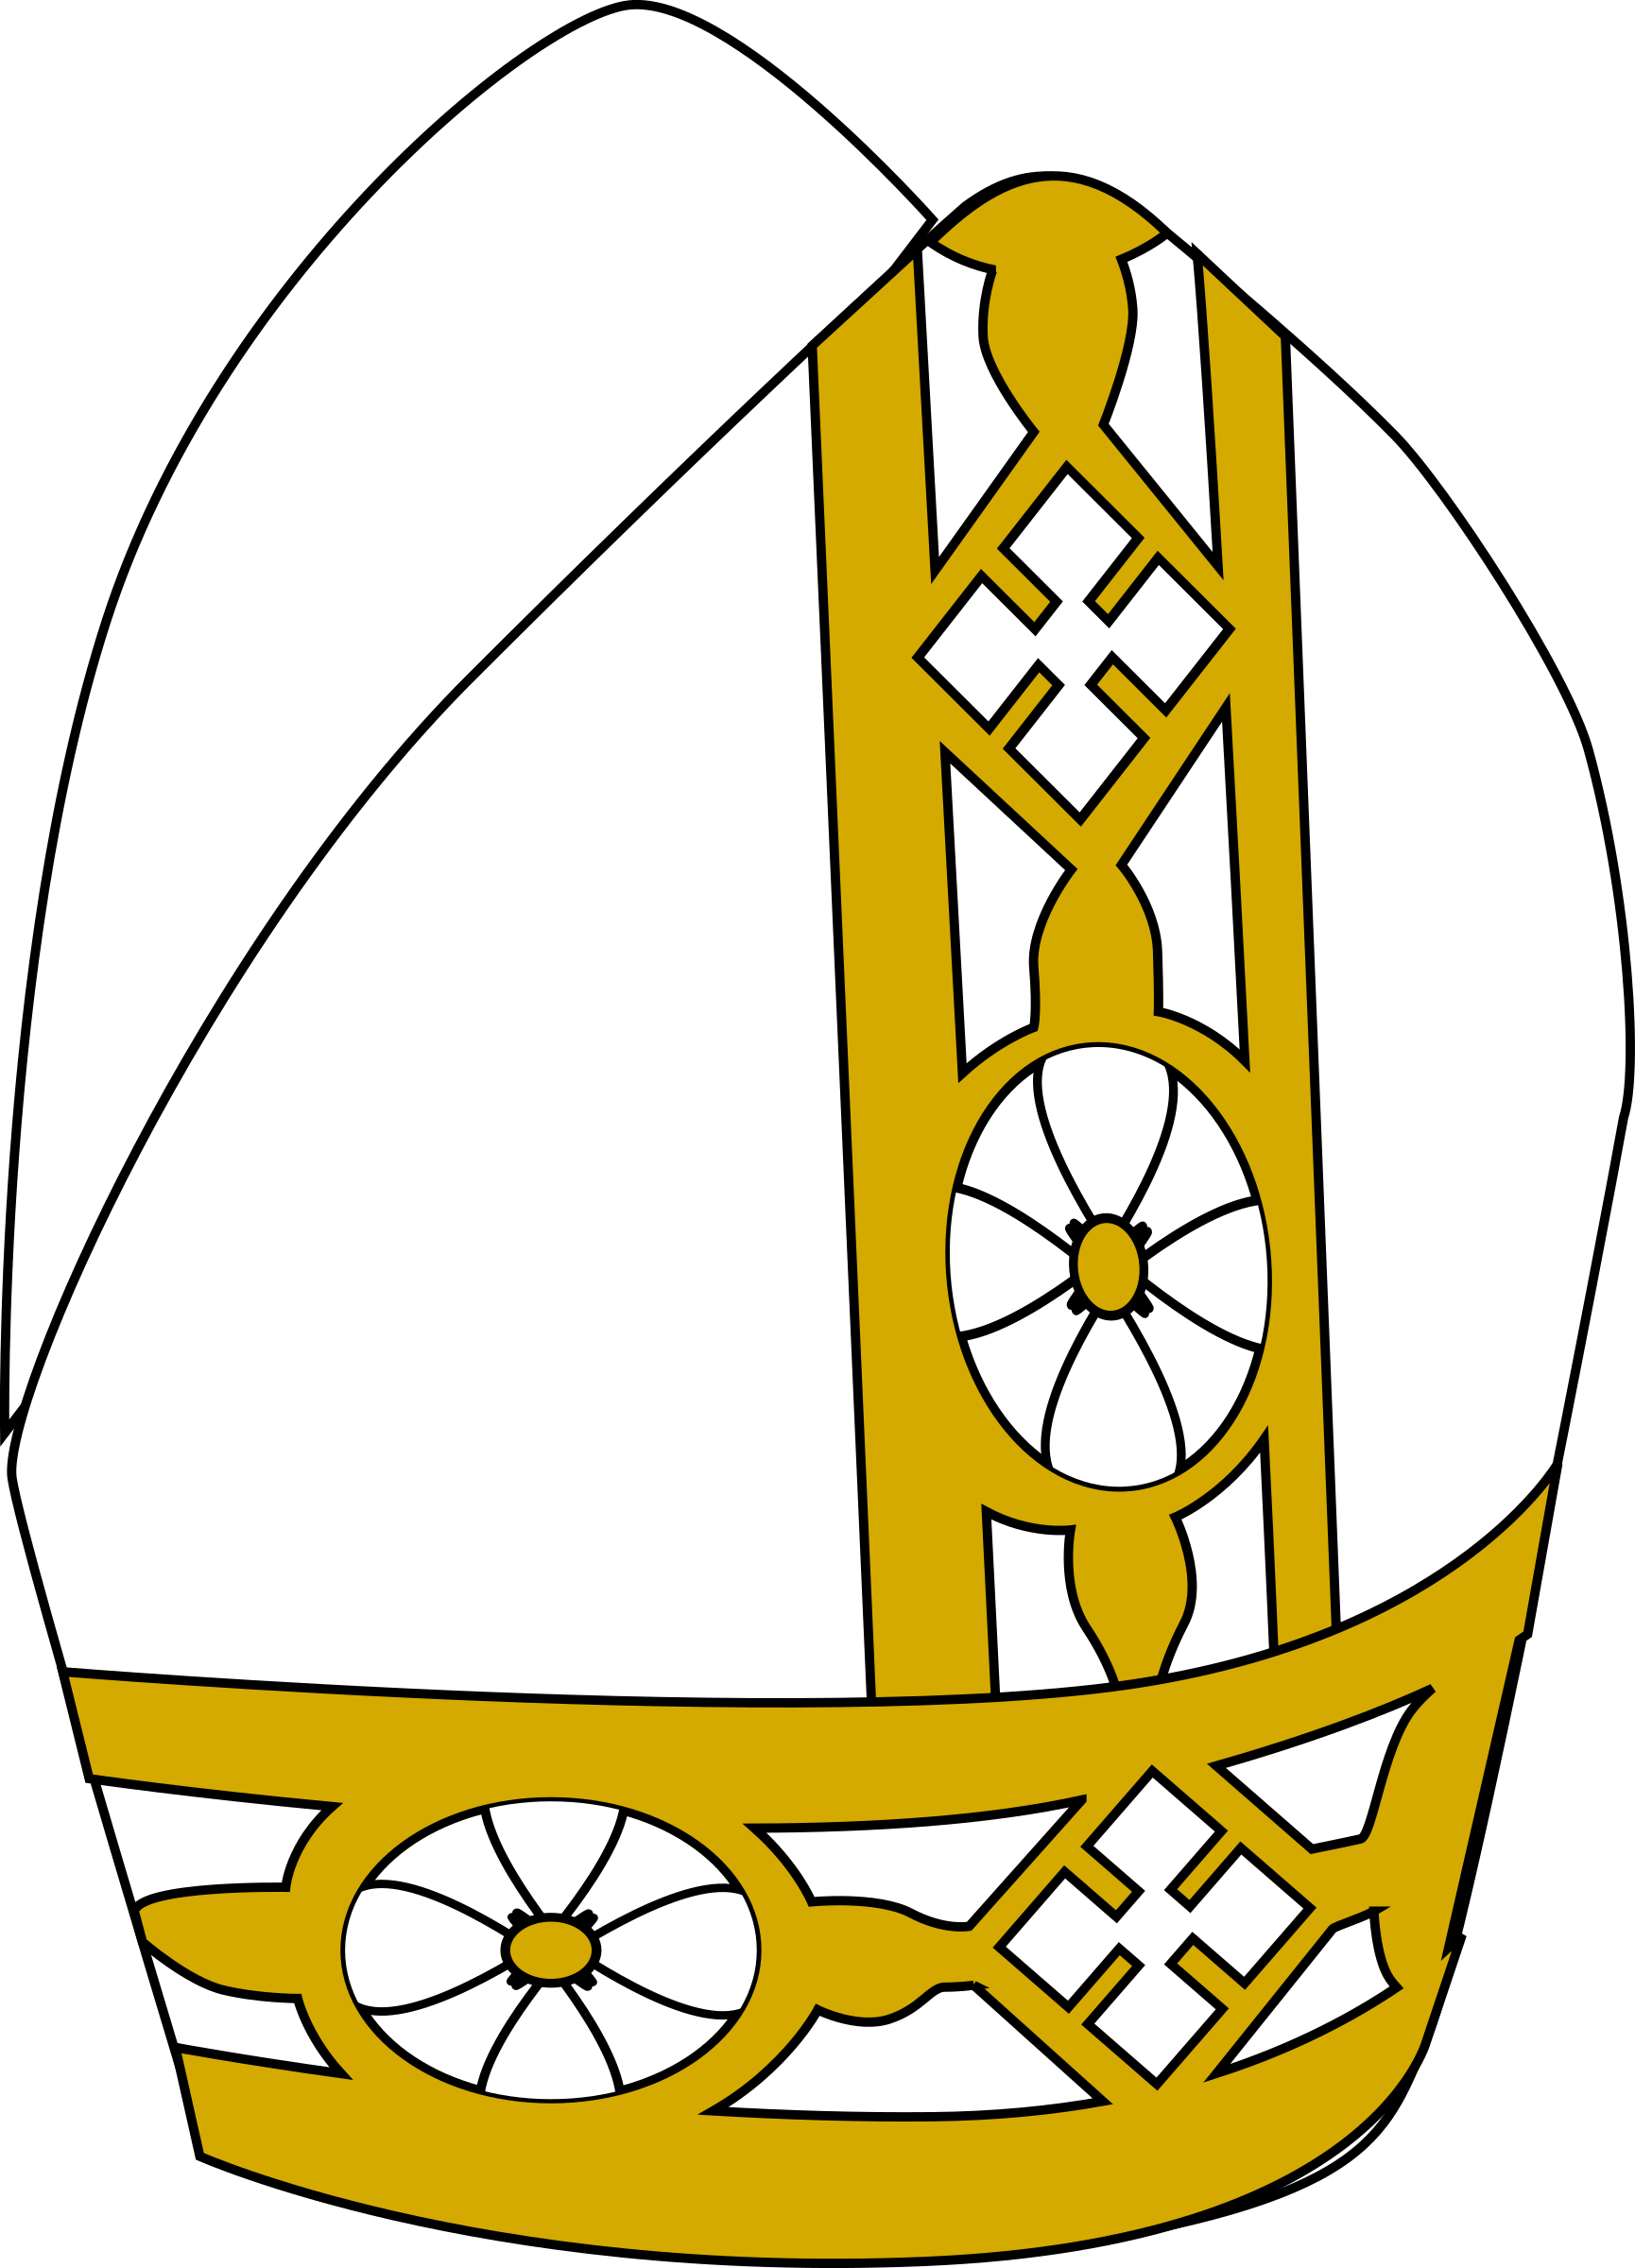 Pope hat png. Clipart big image